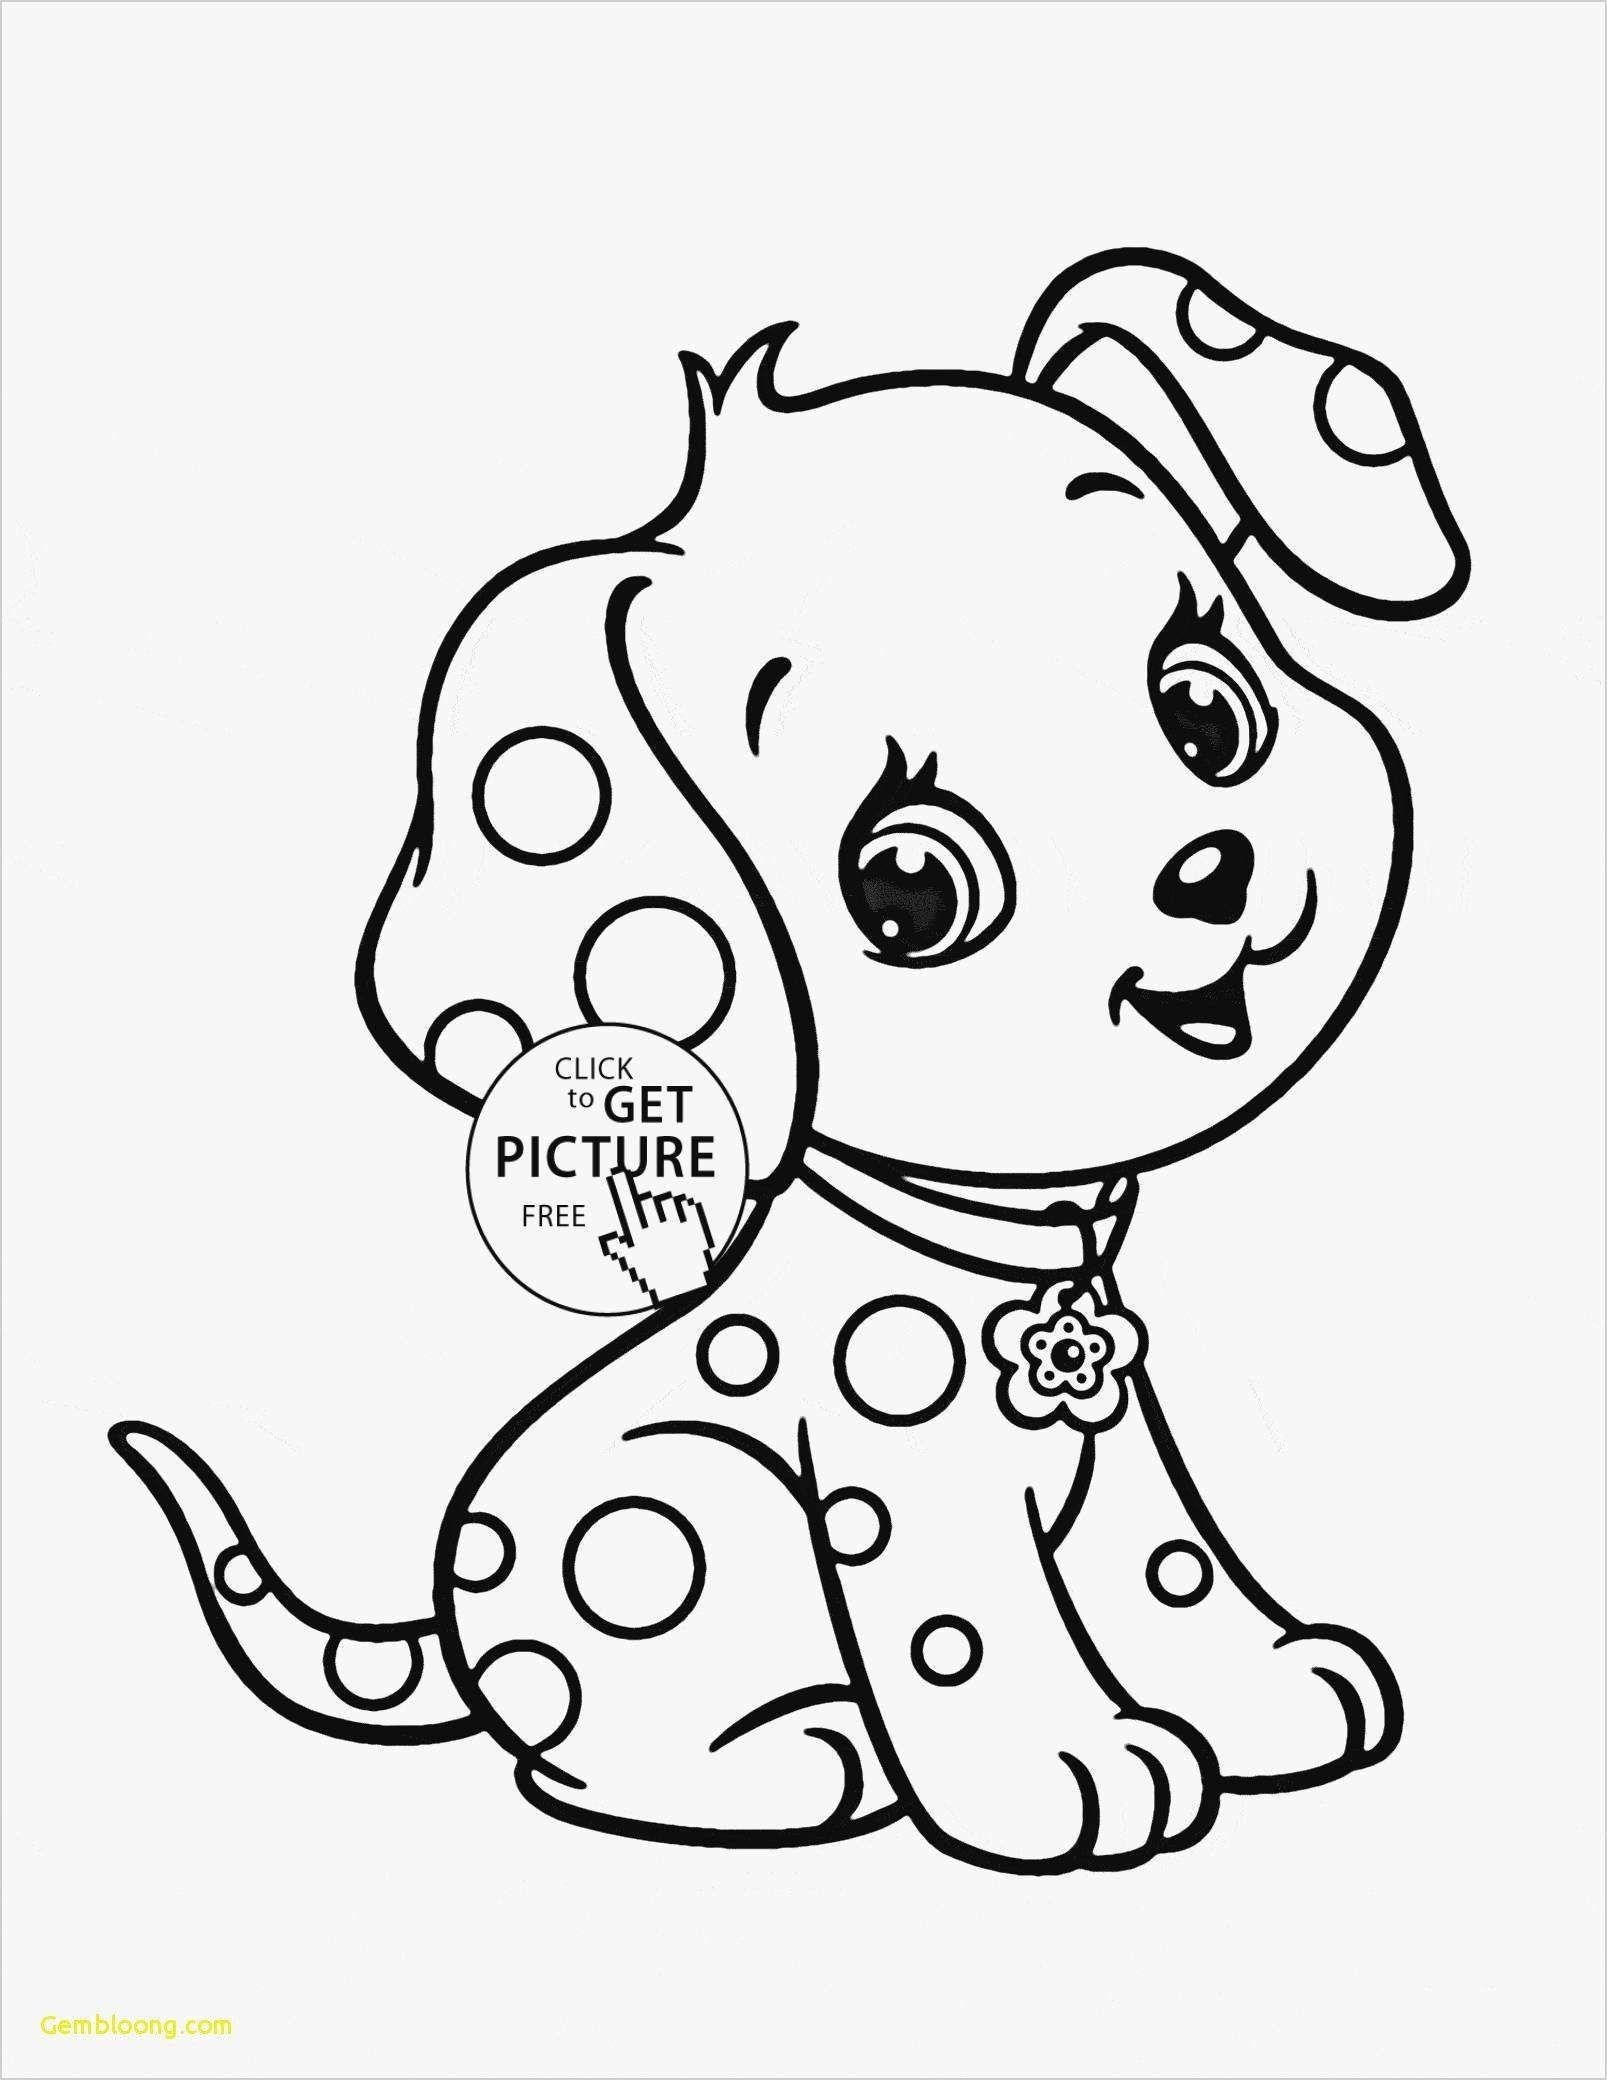 Turn Photo Into Coloring Page Beautiful Inspirational Coloring